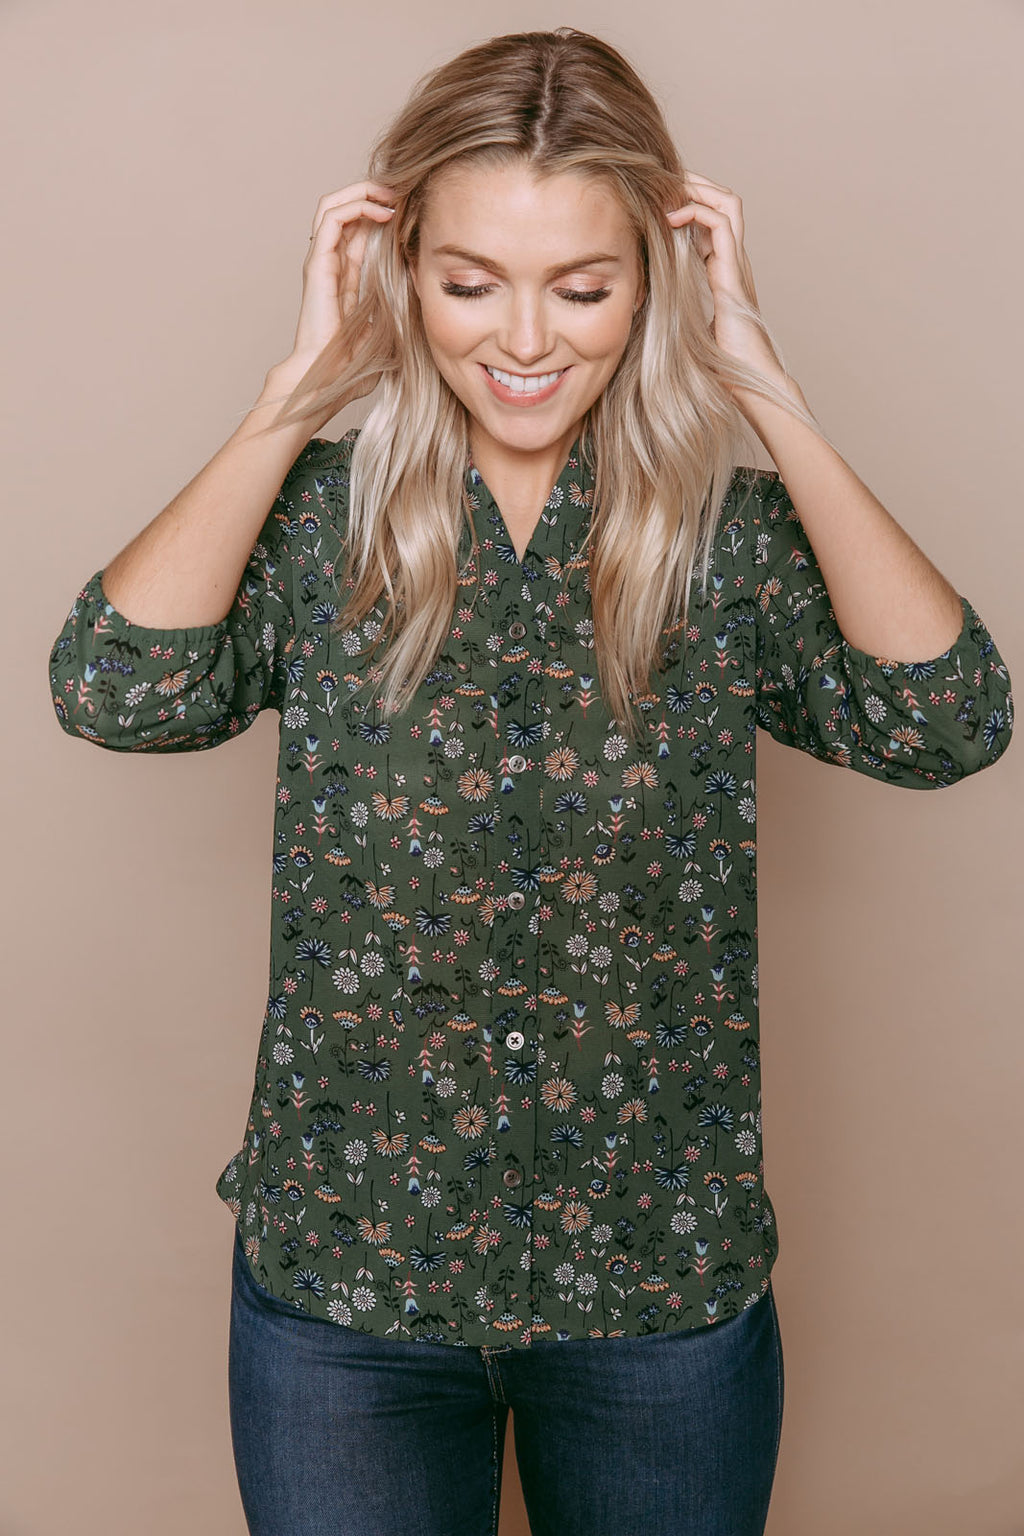 Cadence - Lace Trim Blouse Green Mini Floral